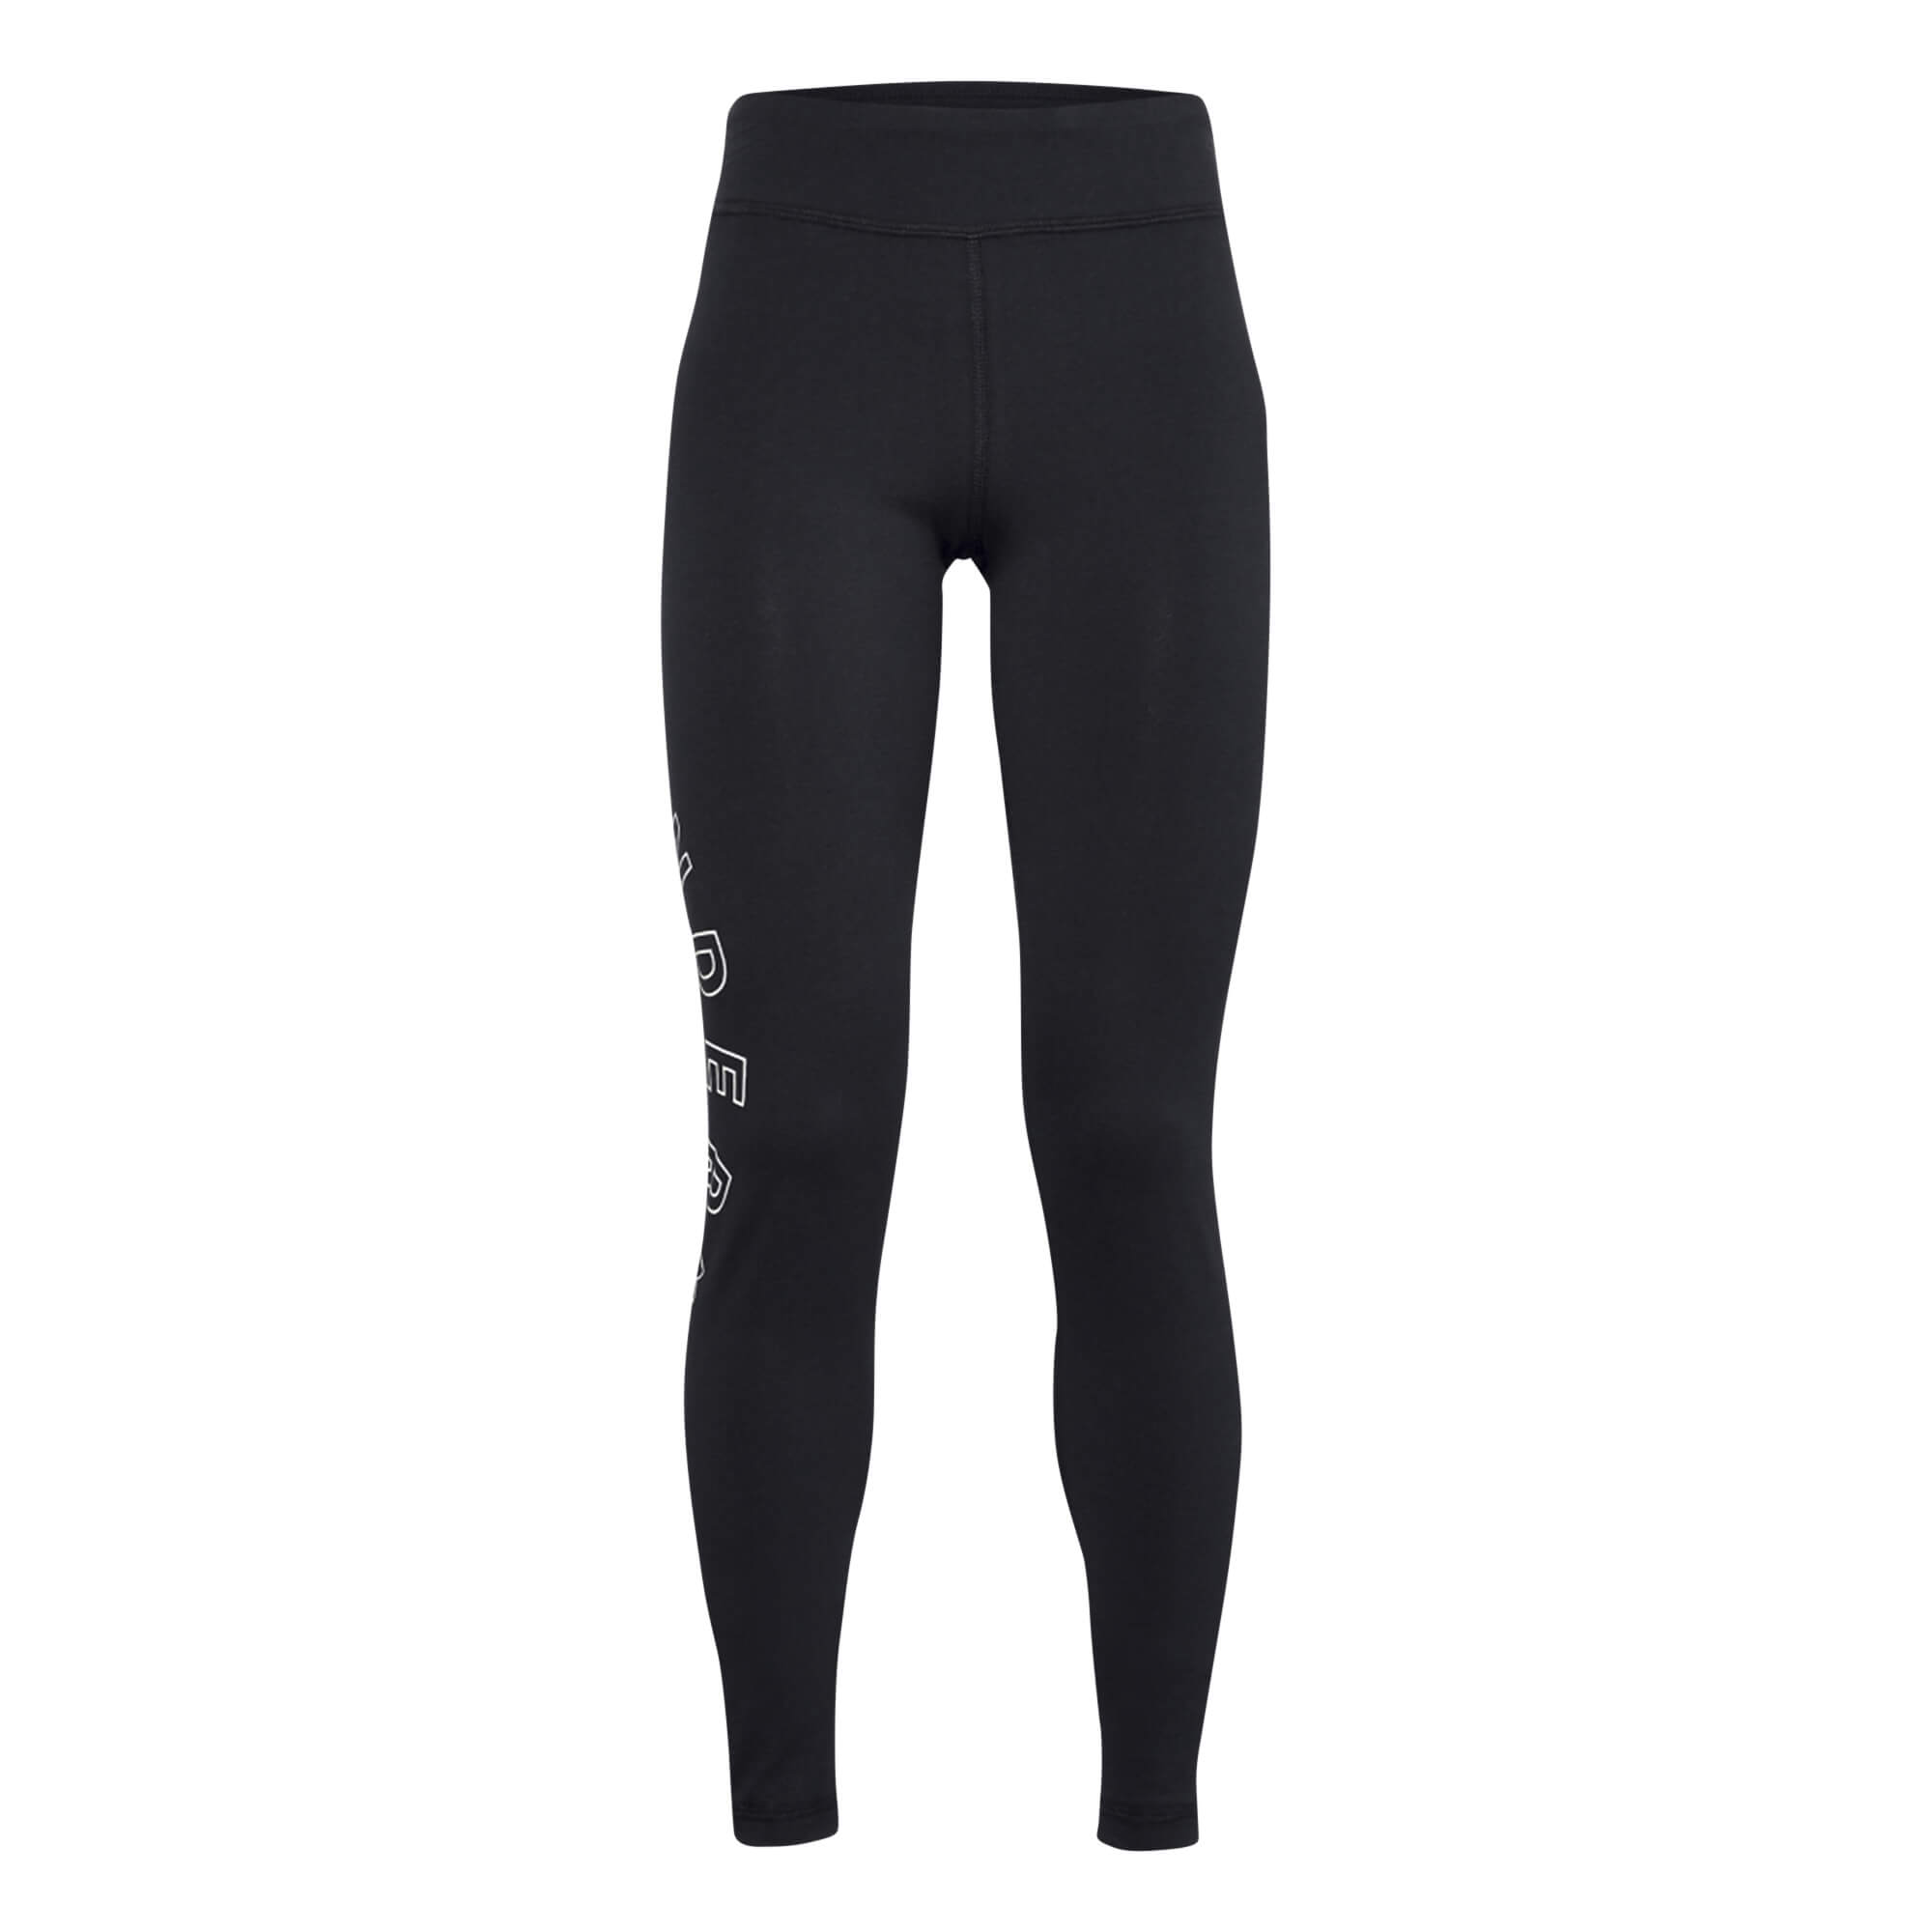 Favorites Leggings imagine produs